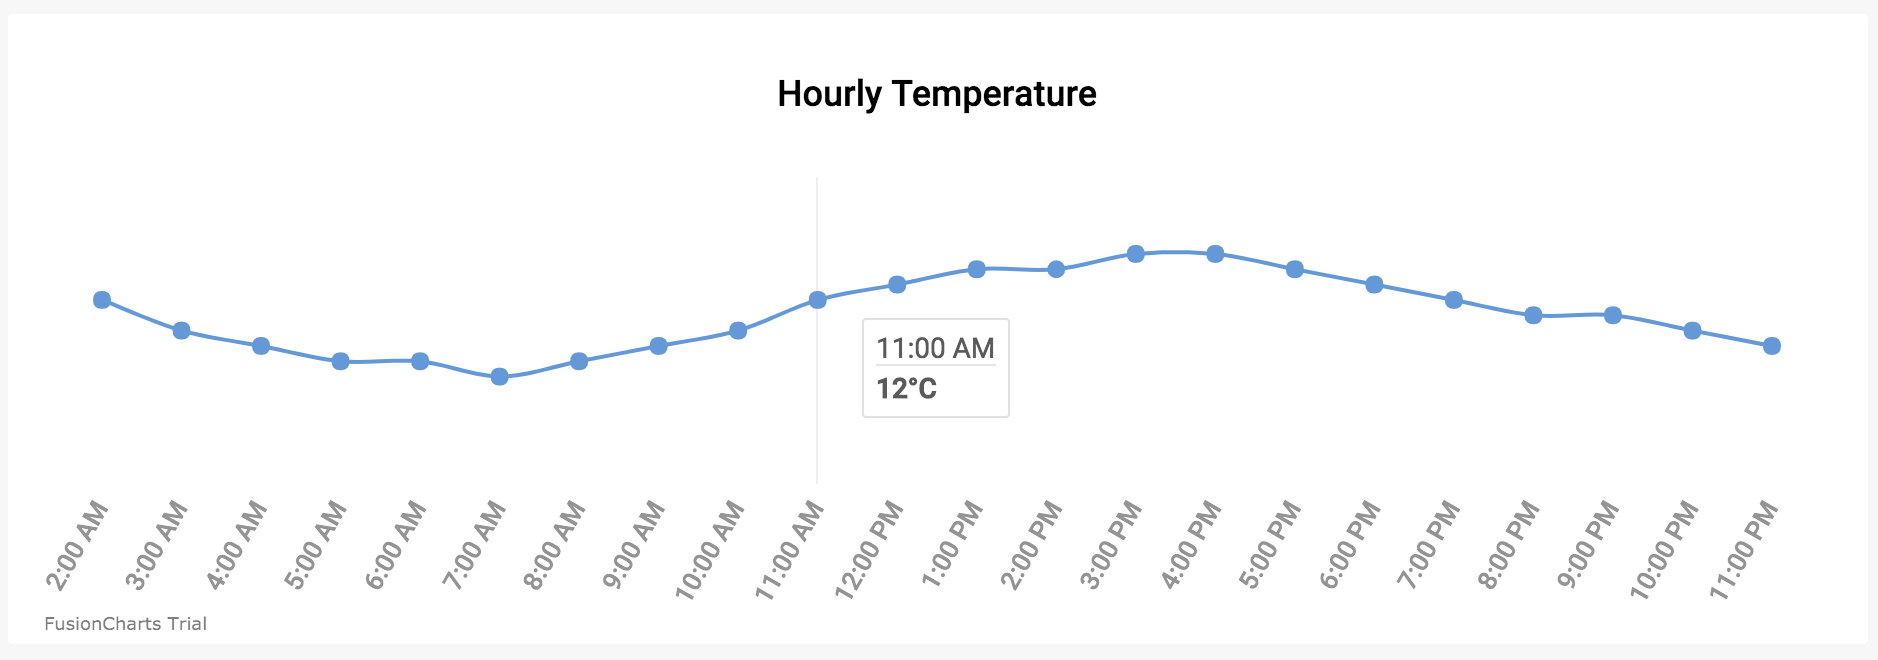 Using Vue js To Create An Interactive Weather Dashboard With